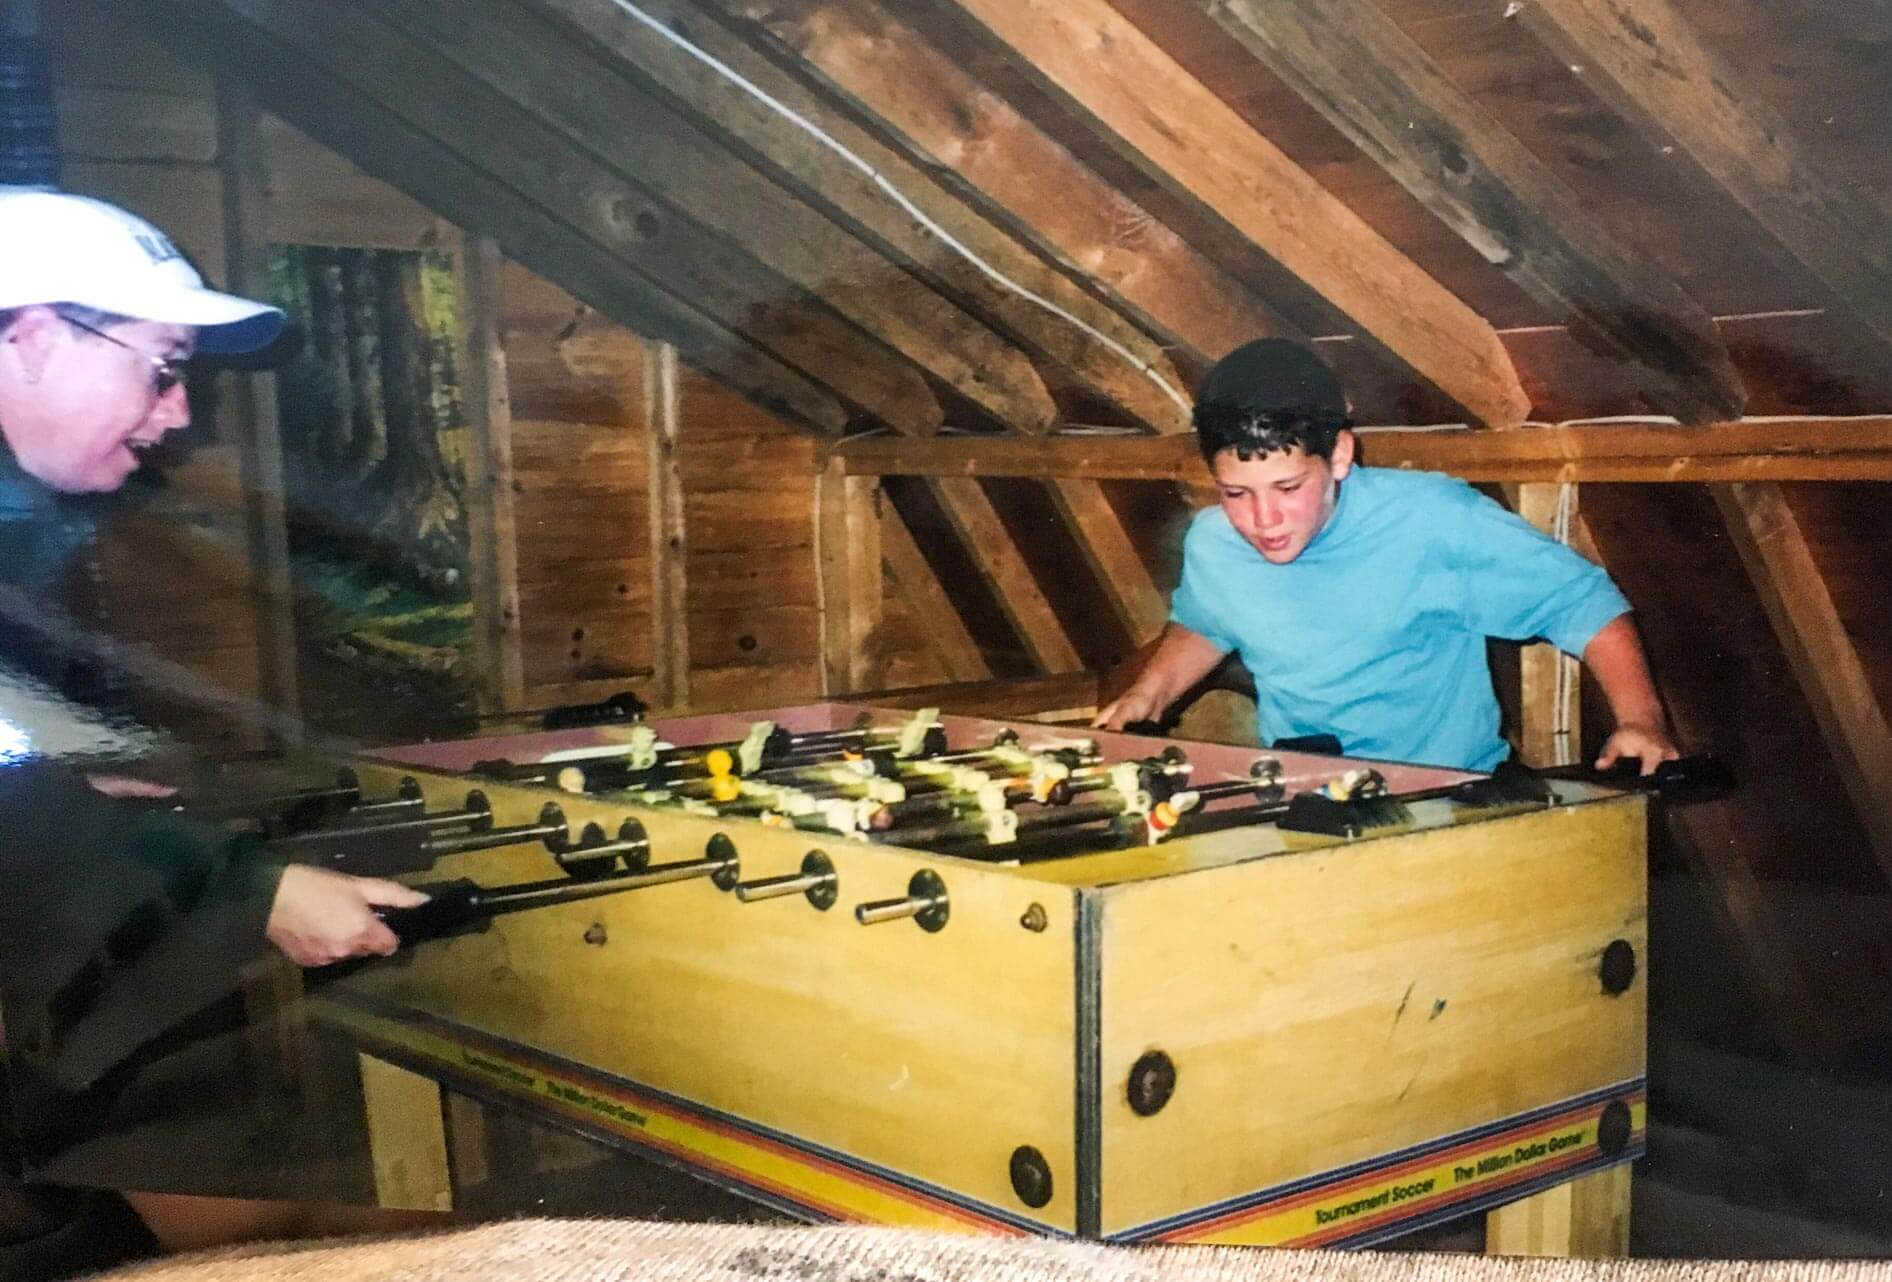 Throwback photo of camper playing foosball